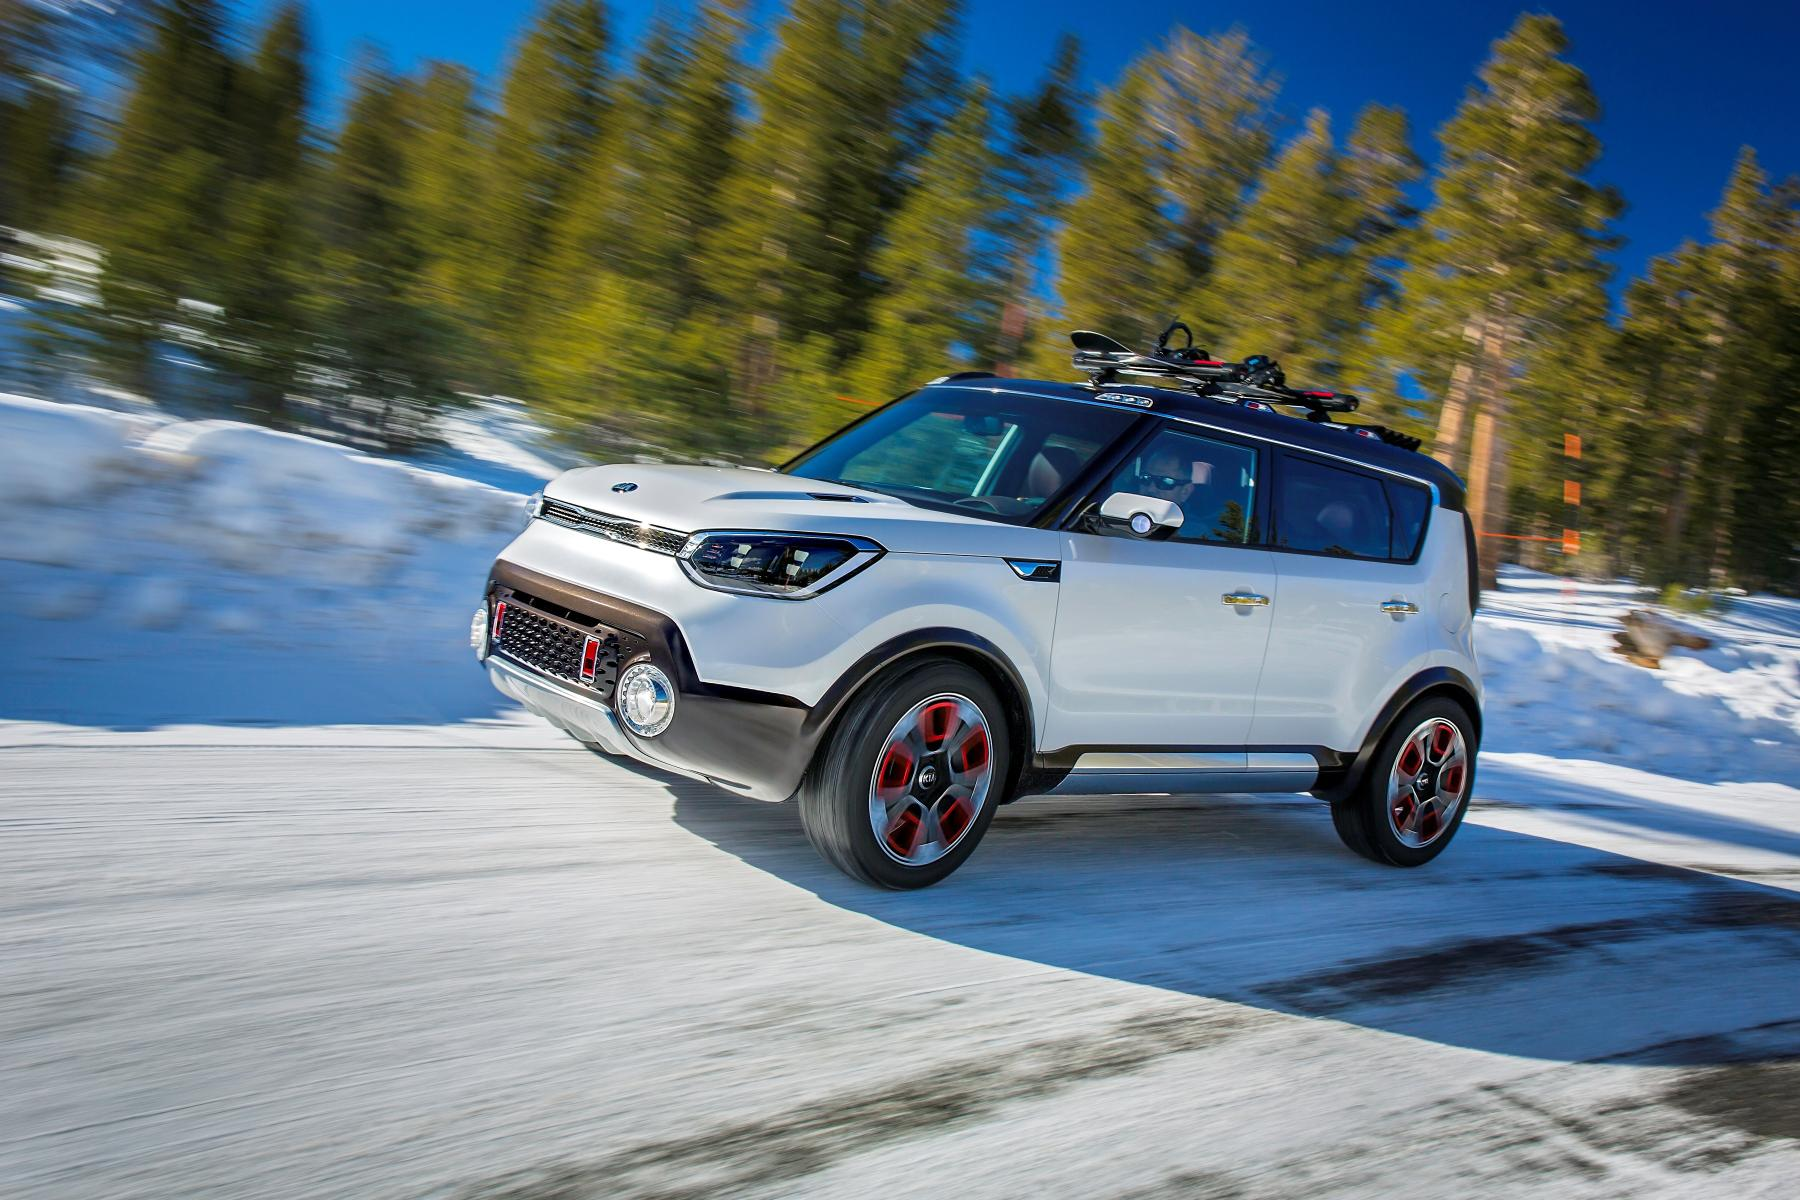 2018 Kia Trailster: News, Expectations >> Kia Soul Trail Ster Concept Details And Pictures Of Hybrid